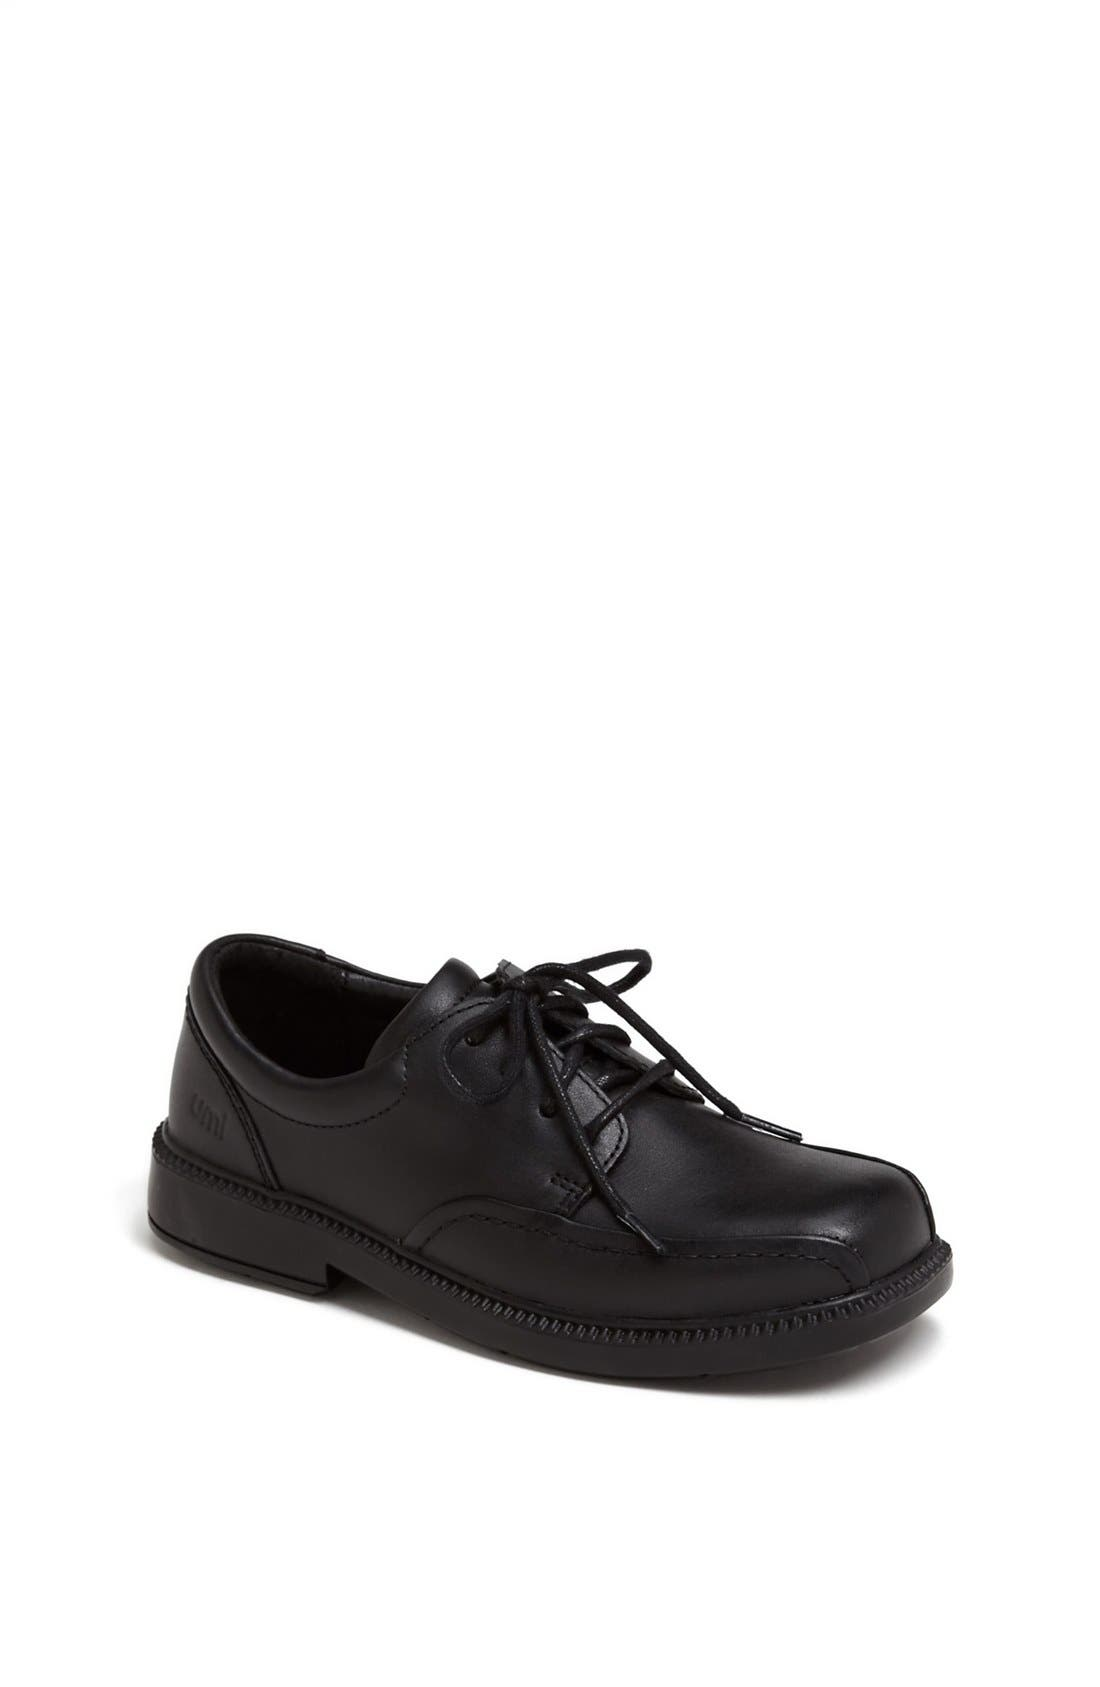 Alternate Image 1 Selected - Umi 'Witton' Dress Shoe (Toddler, Little Kid & Big Kid)